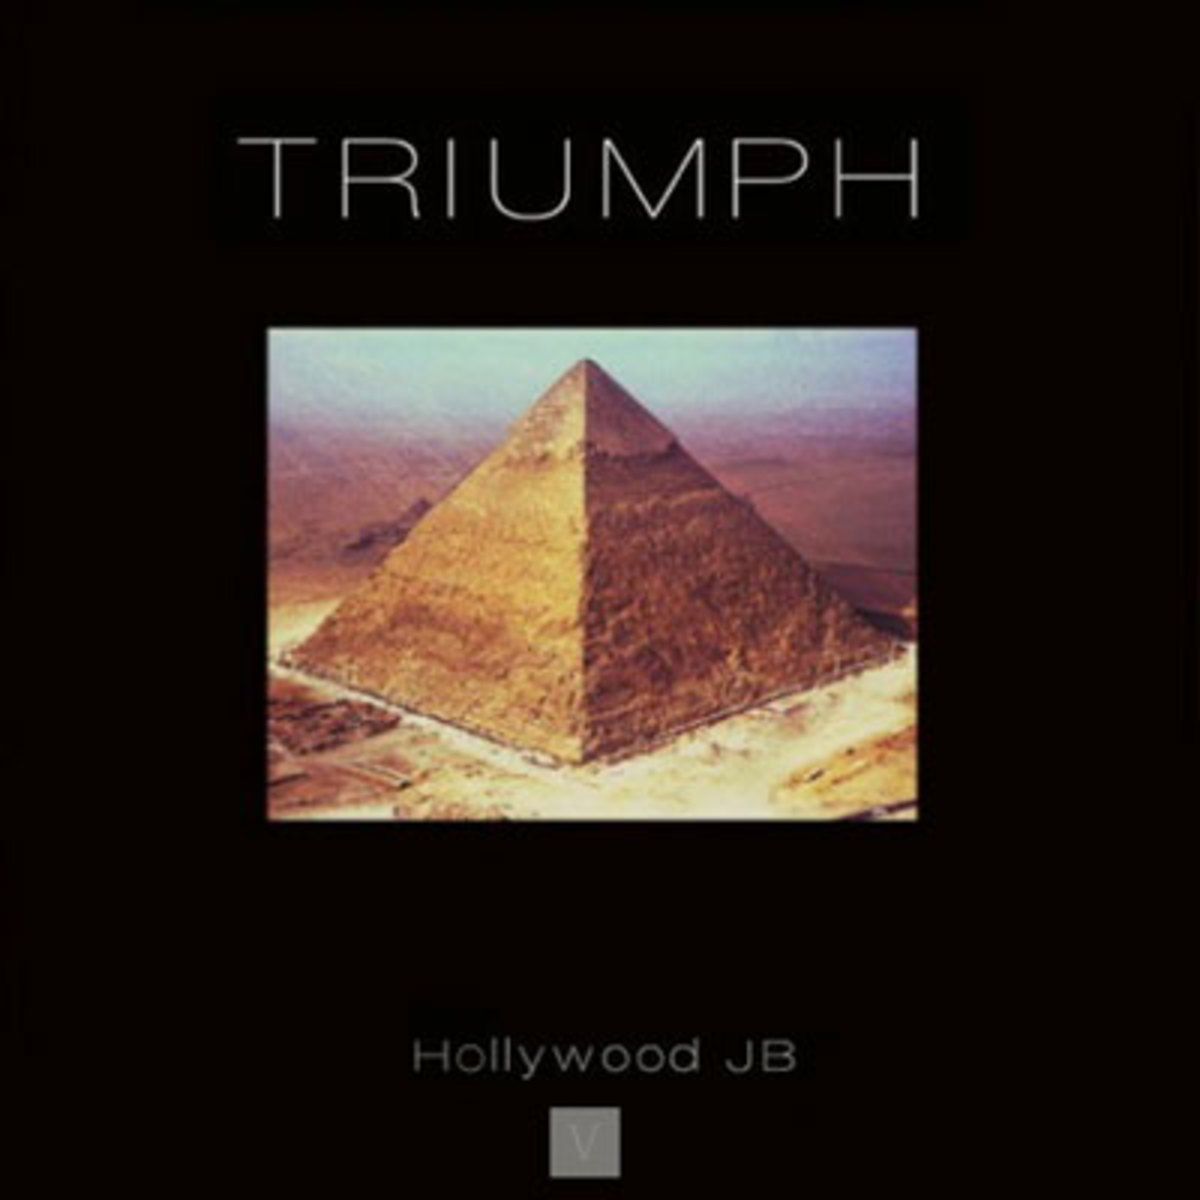 hollywoodjb-triumph.jpg